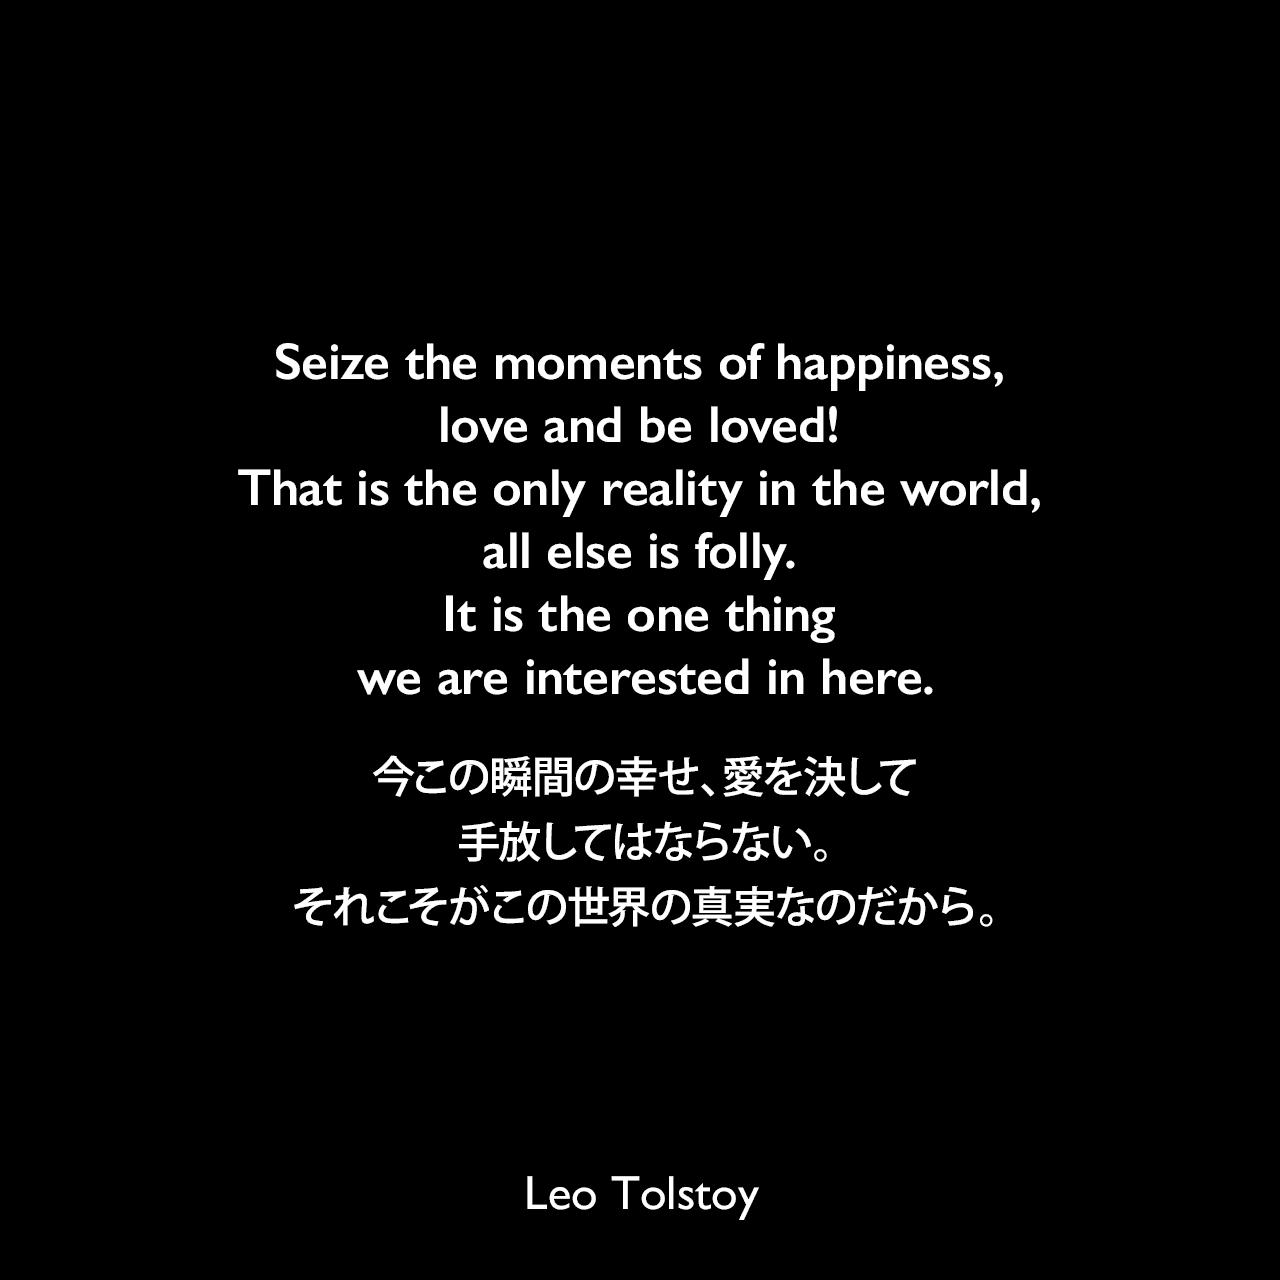 Seize the moments of happiness, love and be loved! That is the only reality in the world, all else is folly. It is the one thing we are interested in here.今この瞬間の幸せ、愛を決して手放してはならない。それこそがこの世界の真実なのだから。- トルストイによる小説「戦争と平和」よりLeo Tolstoy